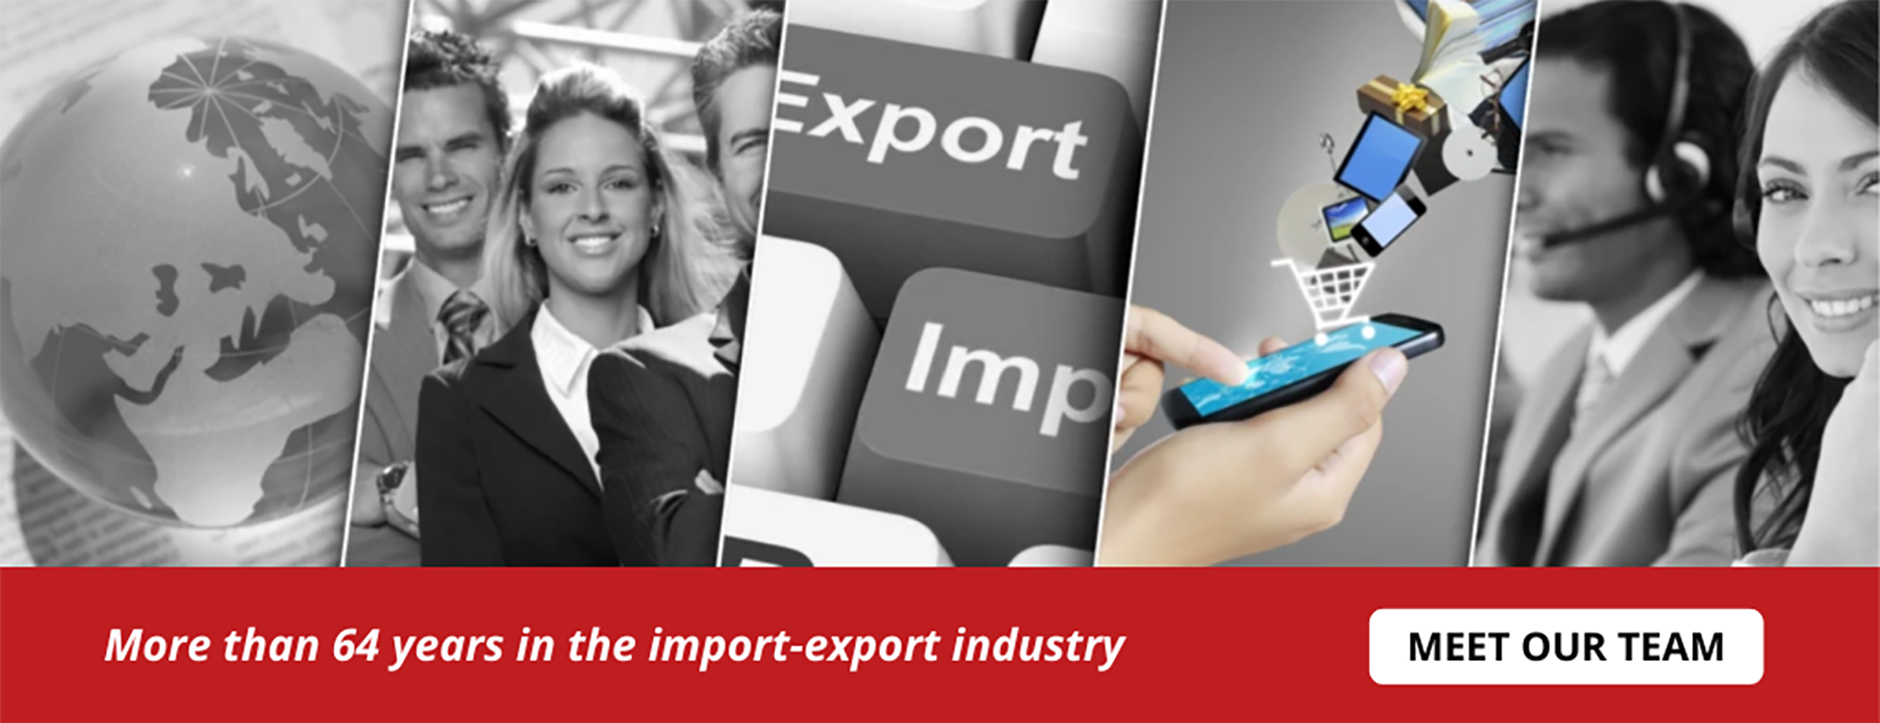 Over 64 years in th import-export industry